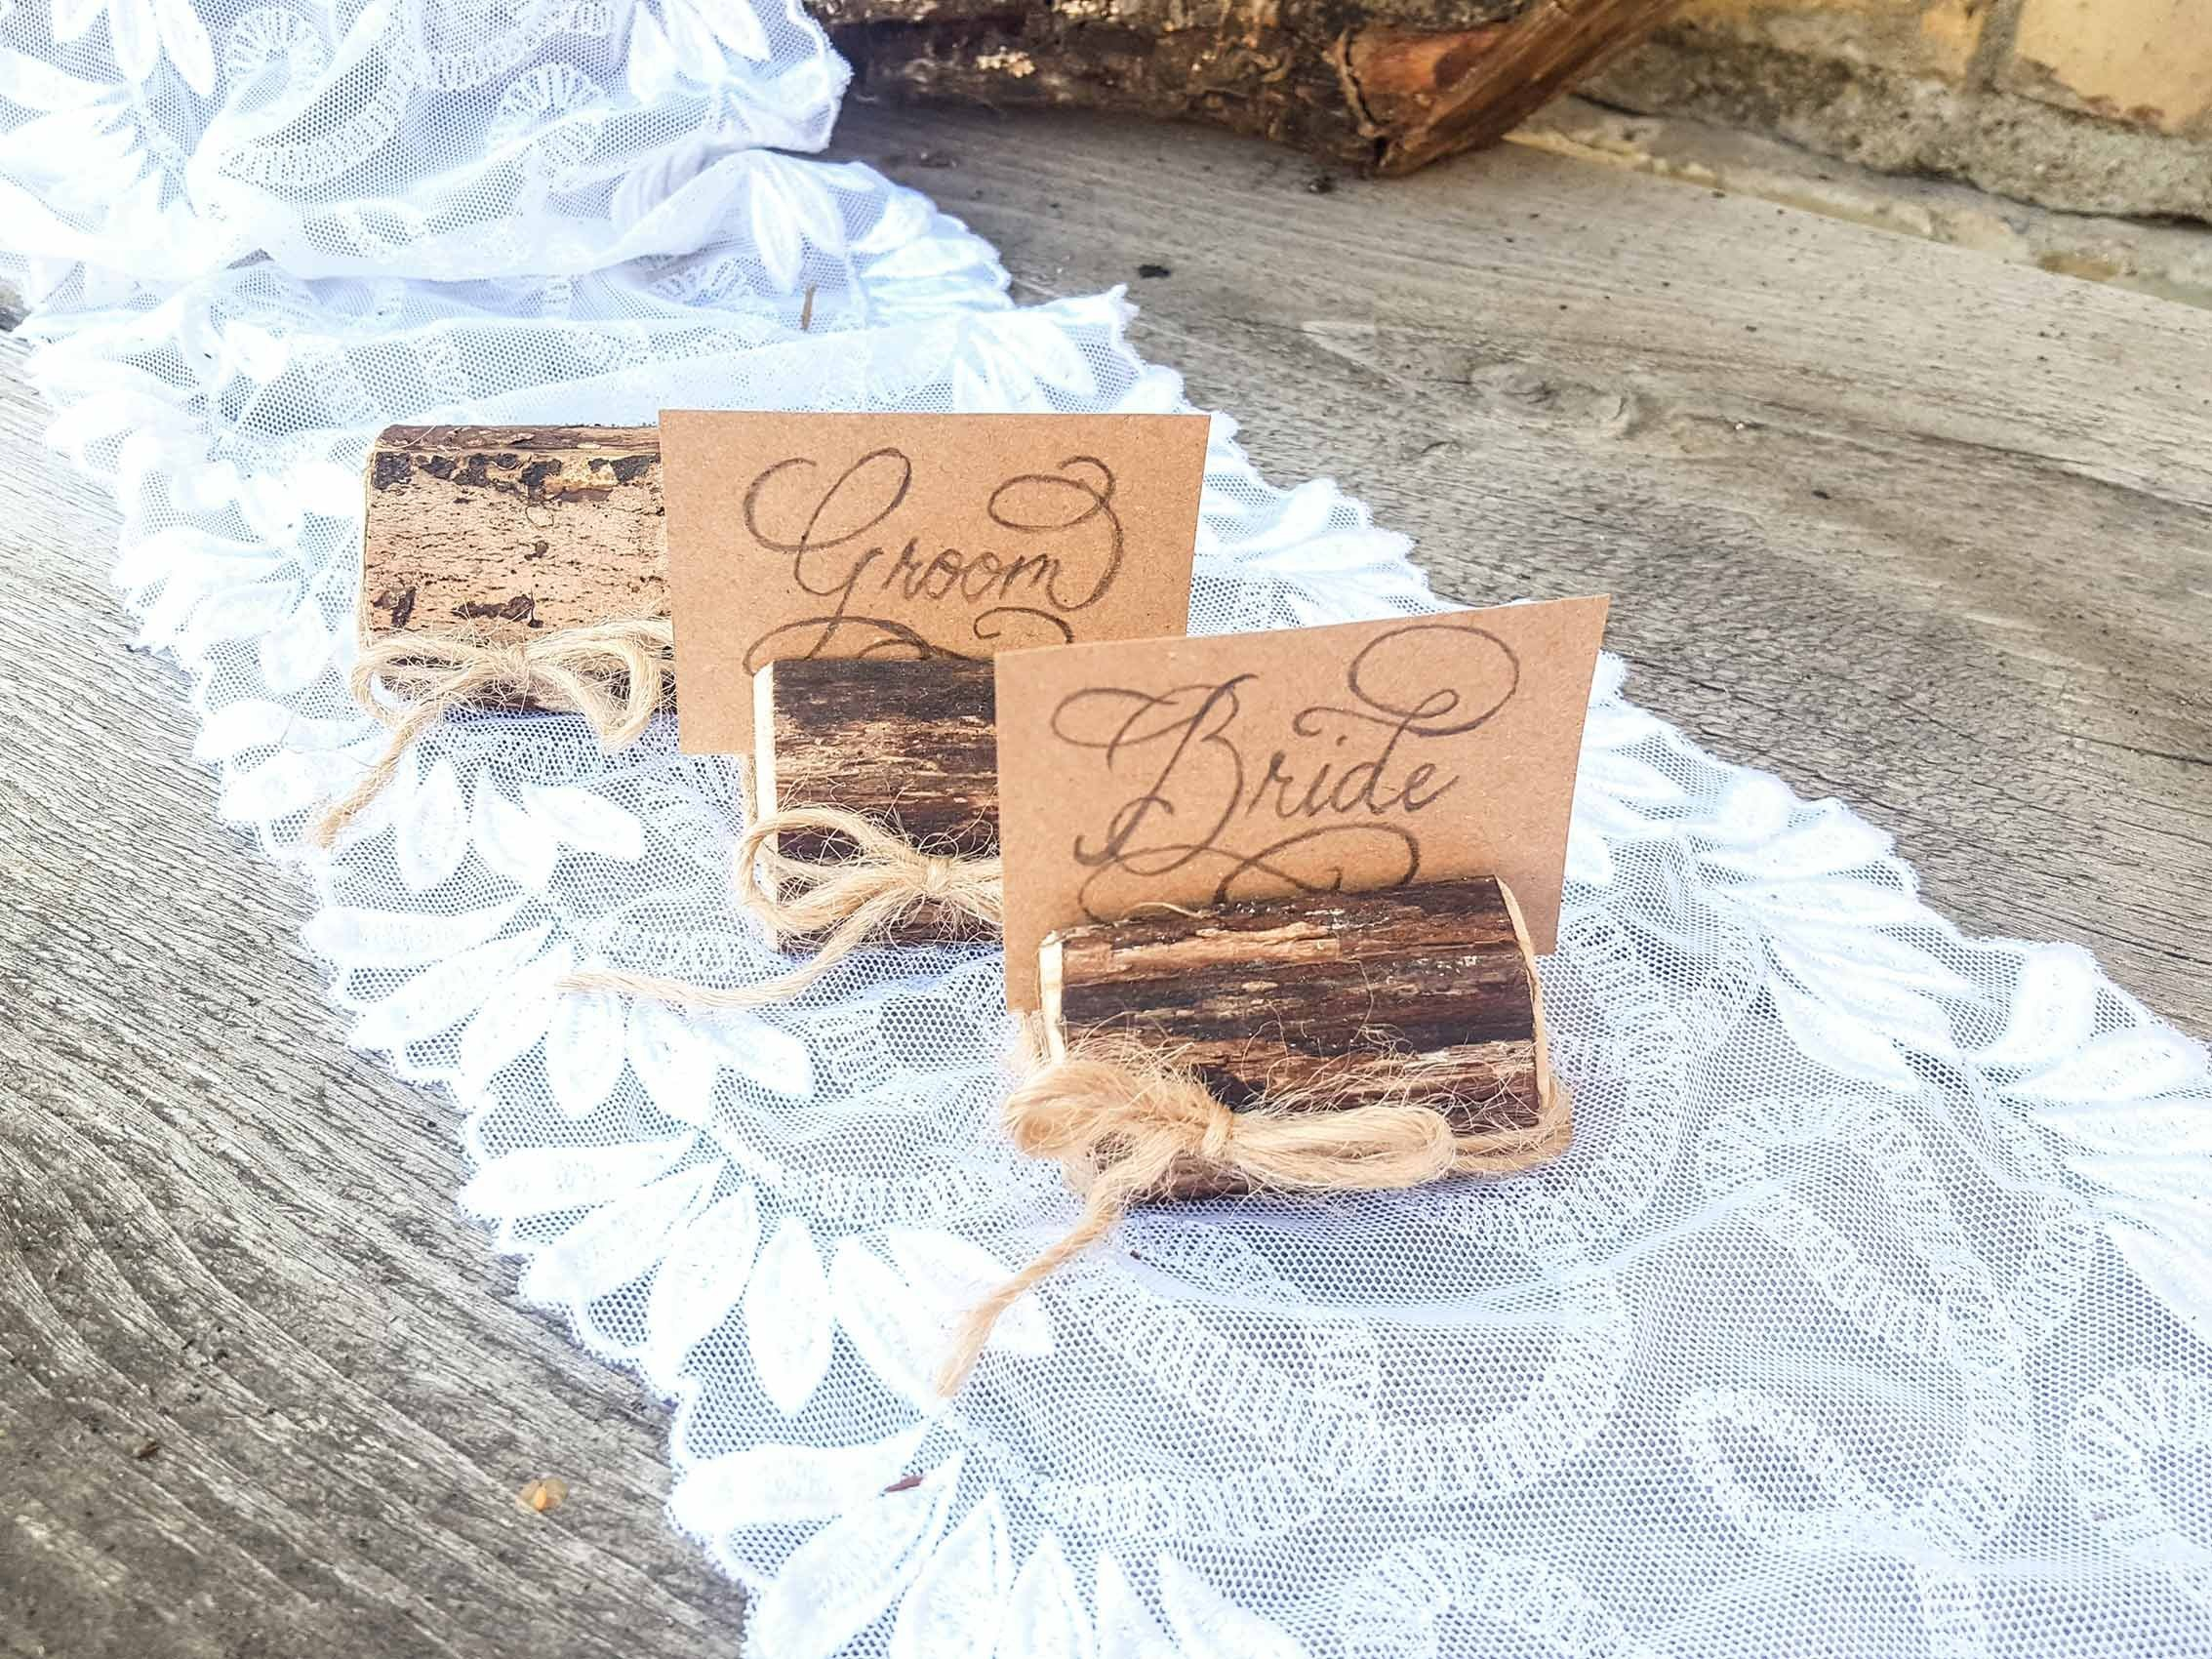 Set of 100 place card holders, name card holders, rustic wood card holder, country style card holder, 100 card holders, deciduous tree branch card holders, rustic chic, natural card holders